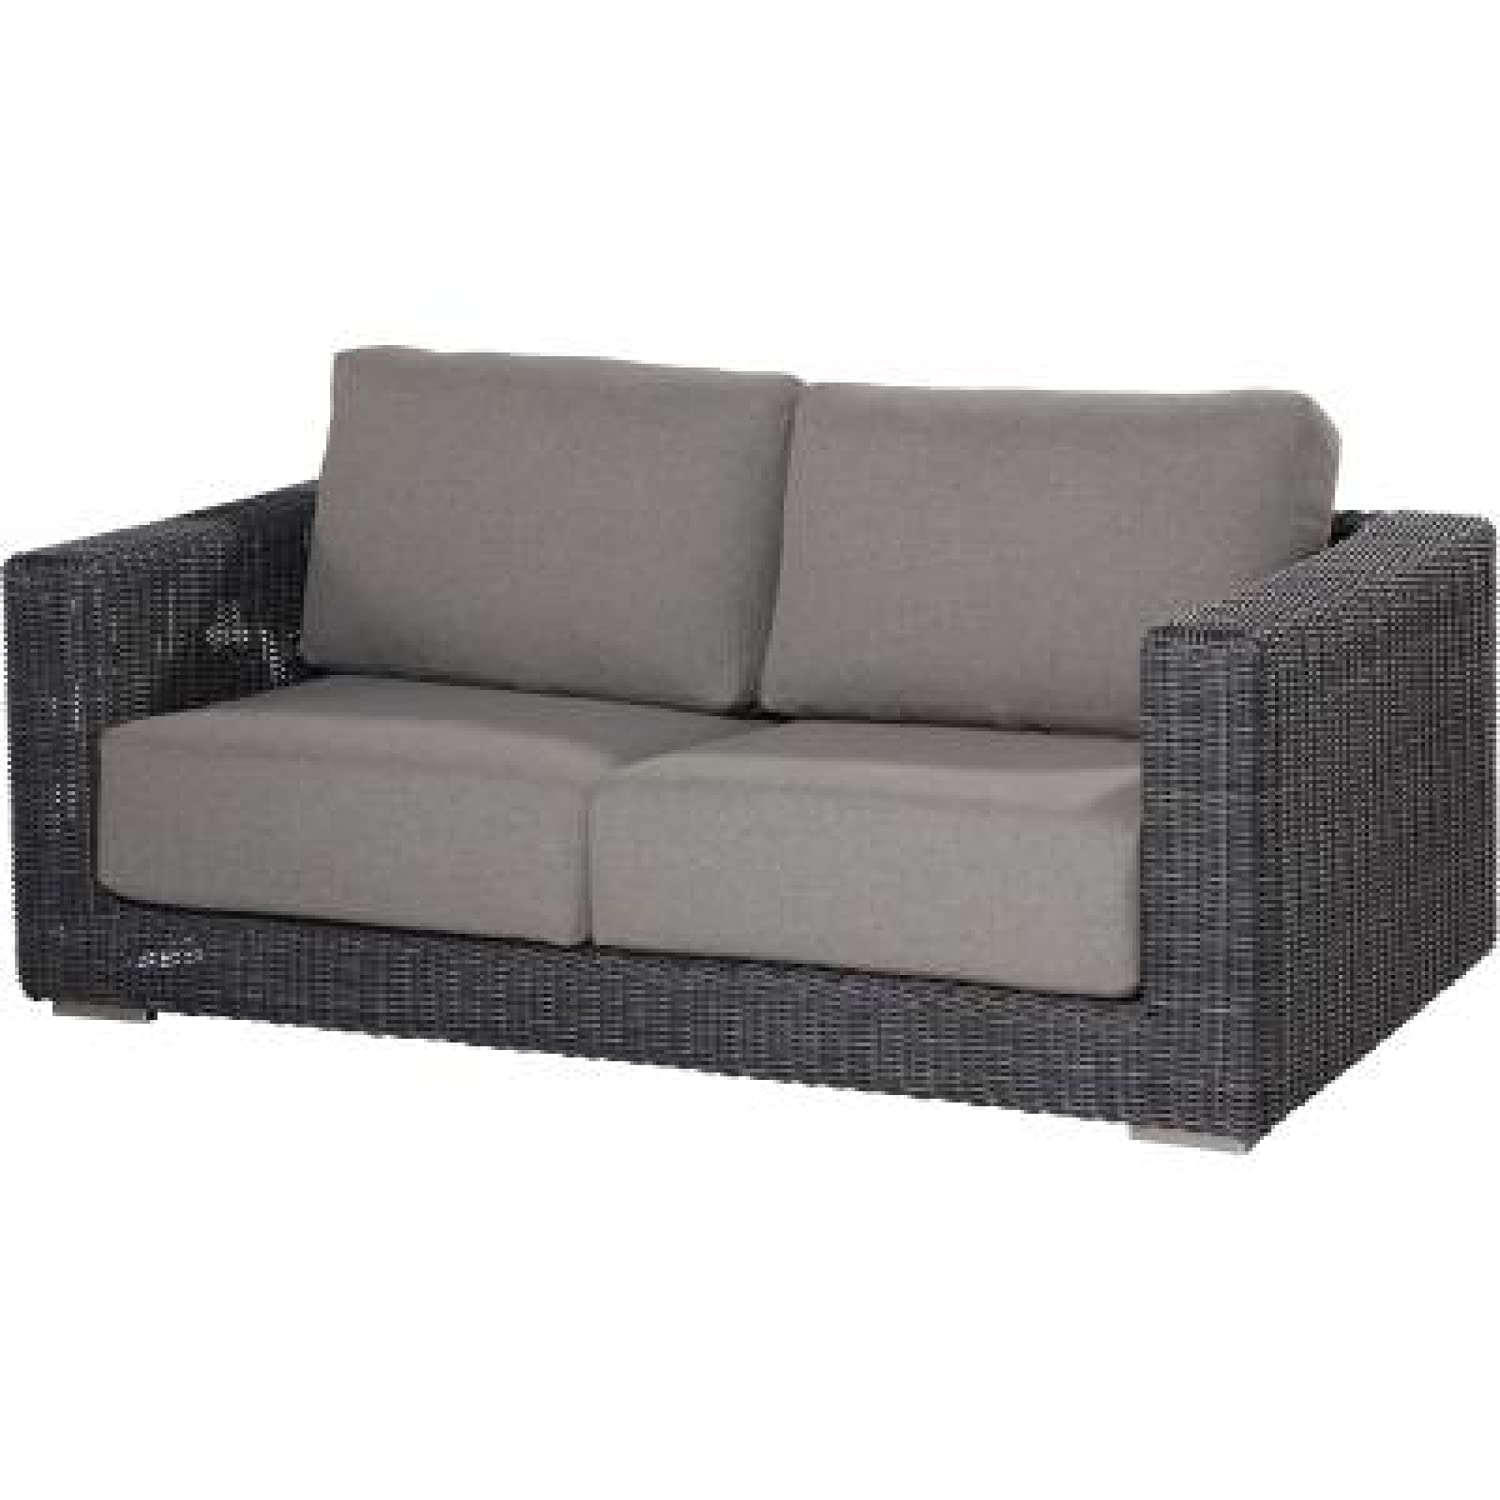 4Seasons Outdoor Somerset Sofa 2,5-Sitzer Loungesofa Polyrattan charcoal wicker